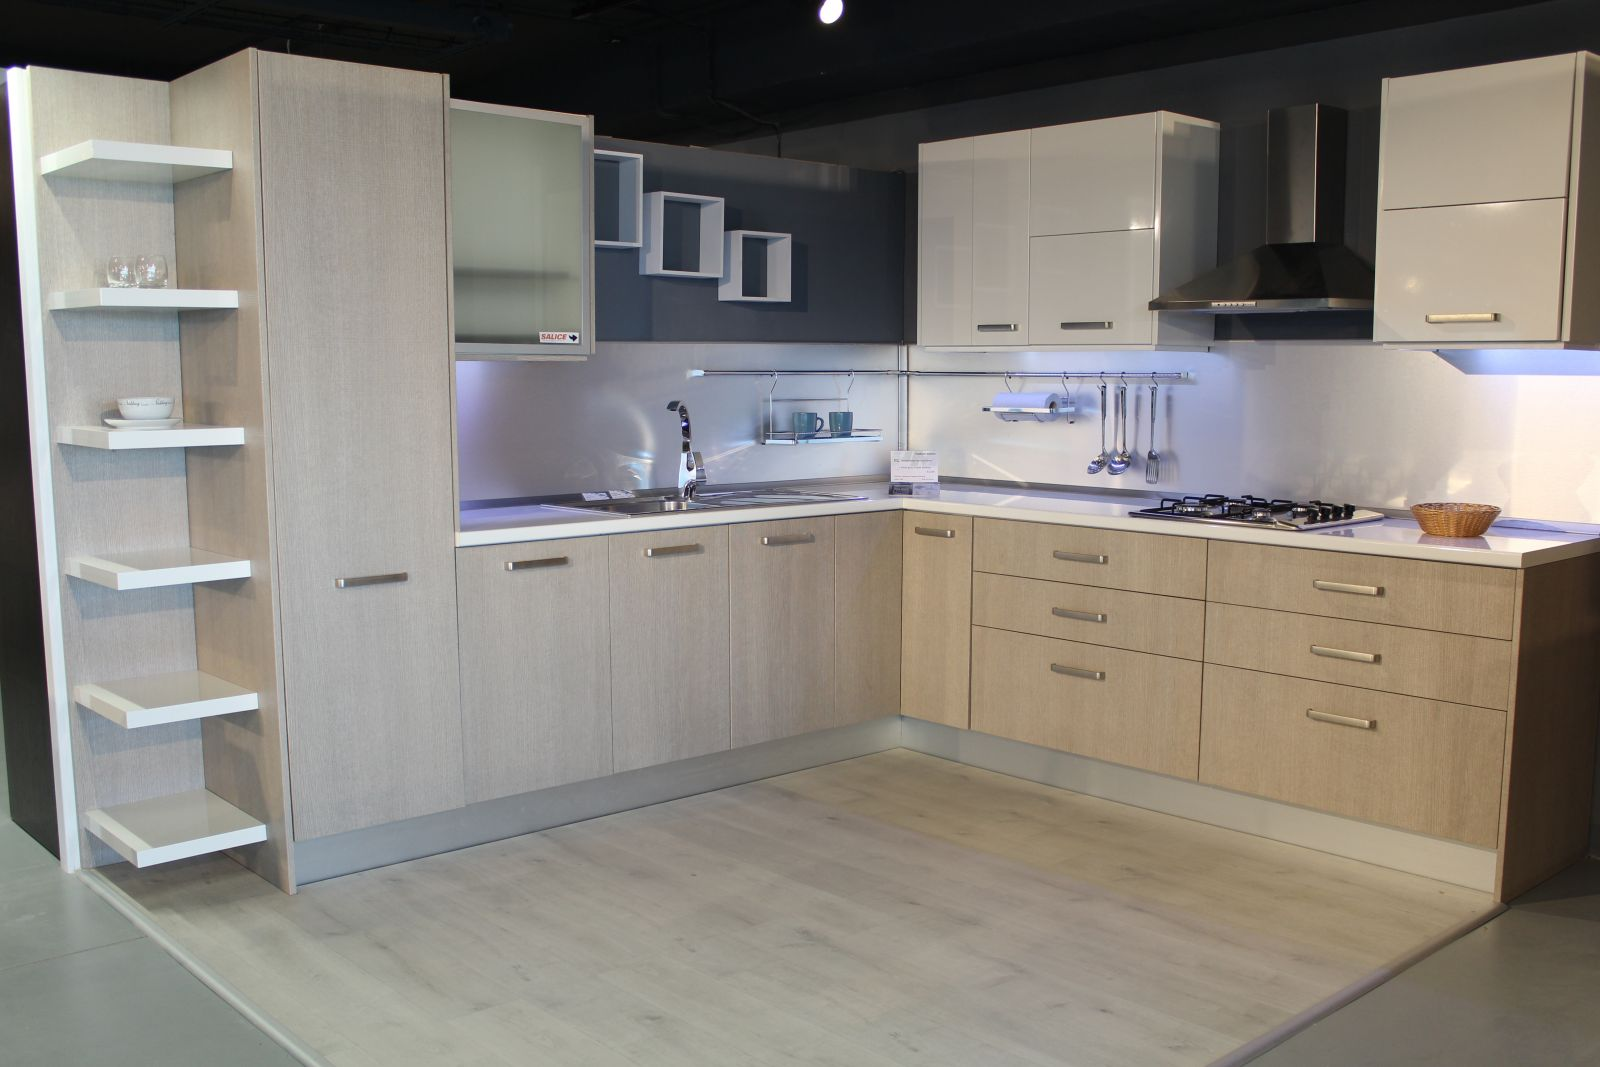 Diy Kitchen Cabinets Malta - Pm hobby also offers additional services including on time delivery of goods to any location in malta and gozo cutting and planning of timber and sheets